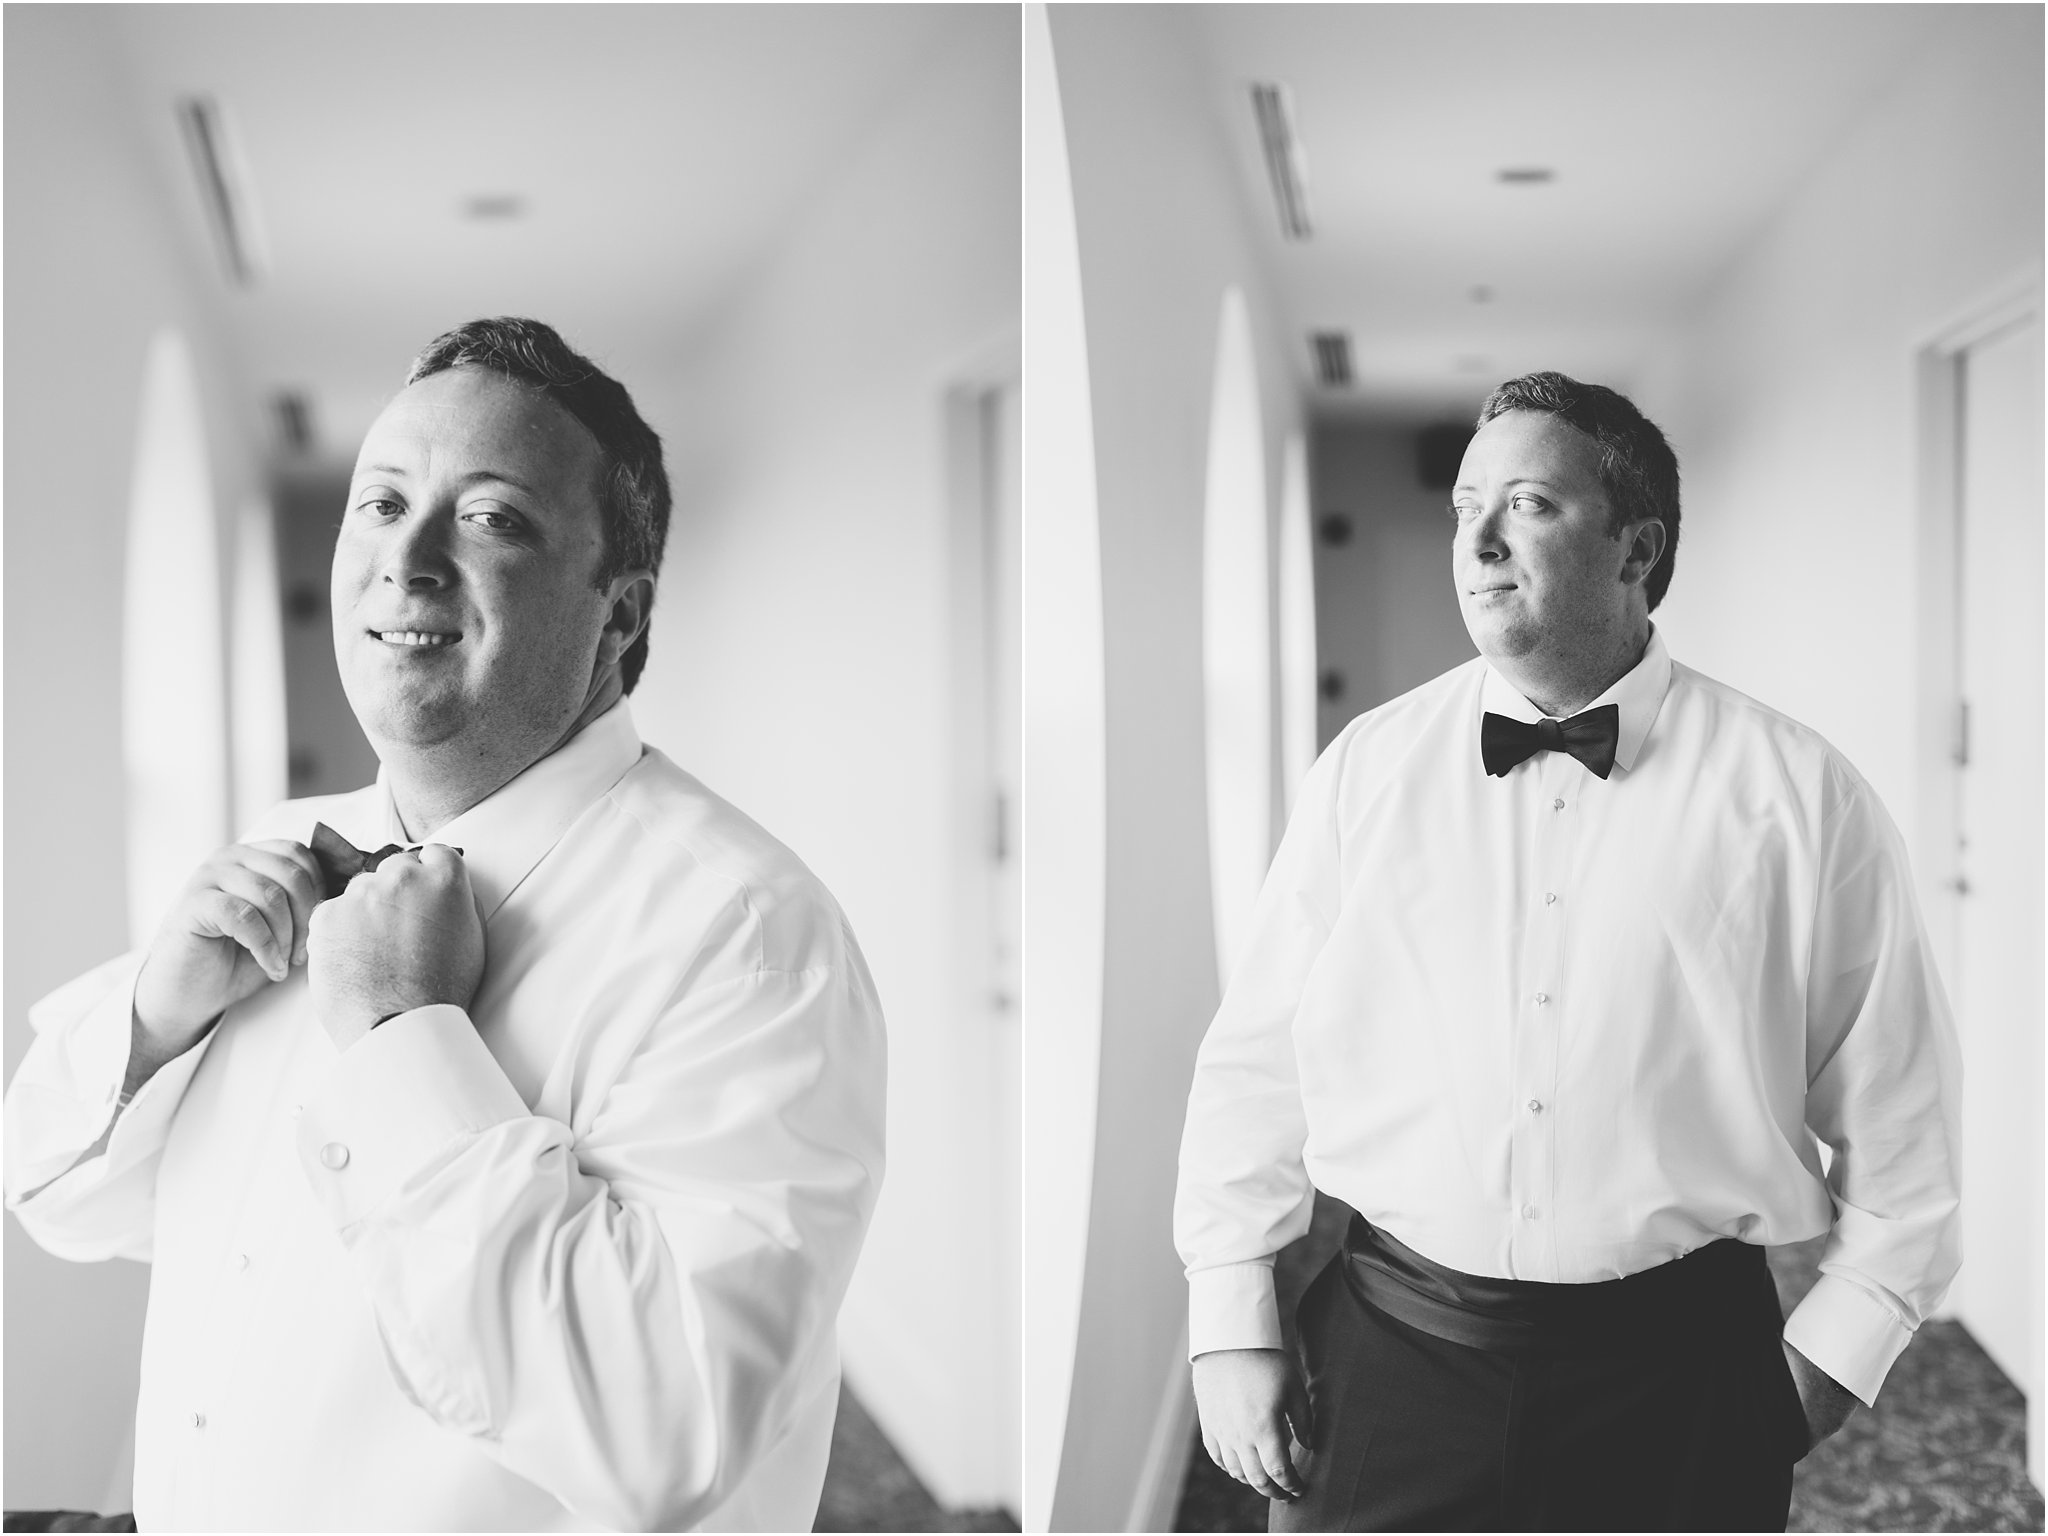 va_jessica_ryan_photography_virginia_wedding_norfolk_harrison_opera_house_norfolk_arts_district_portraits_3777